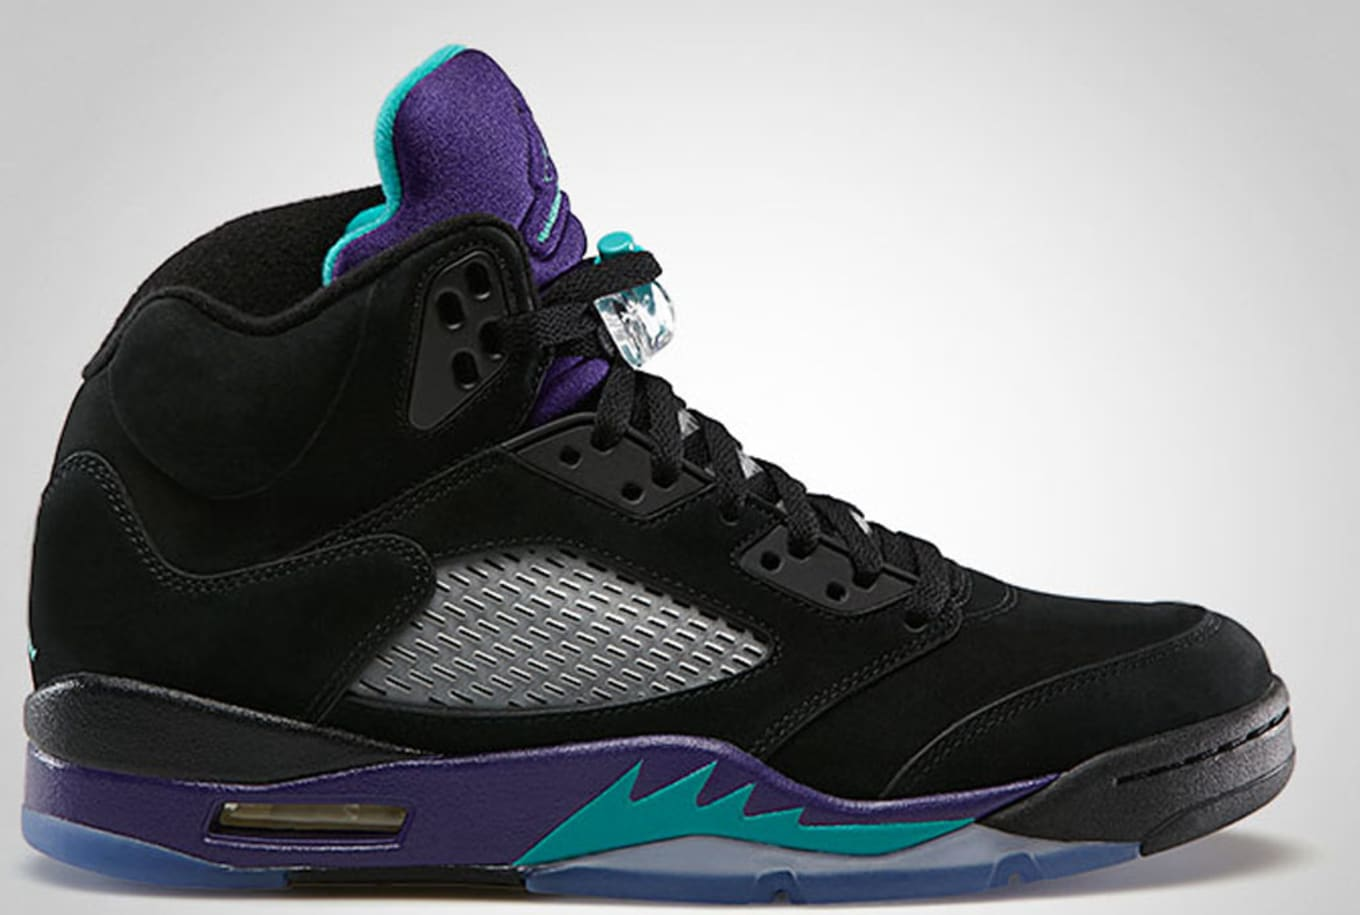 los angeles 7e6fa 9b050 Air Jordan 5: The Definitive Guide to Colorways | Sole Collector